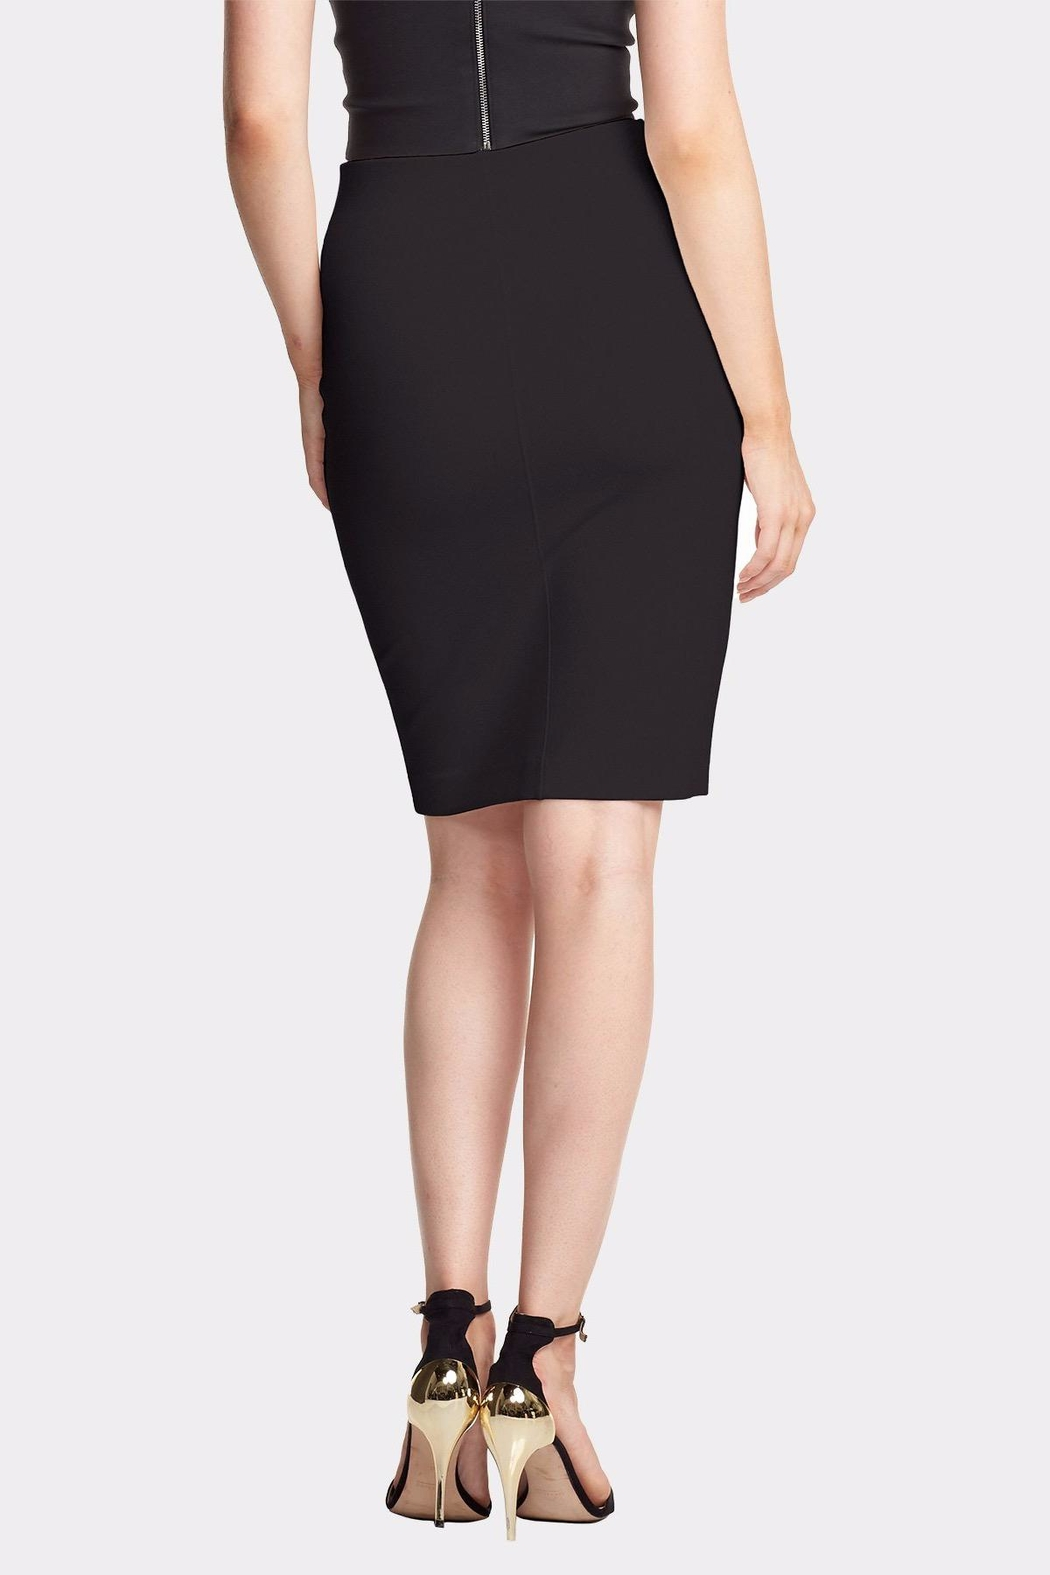 Tart Collections Tracy Ponte Skirt - Front Full Image